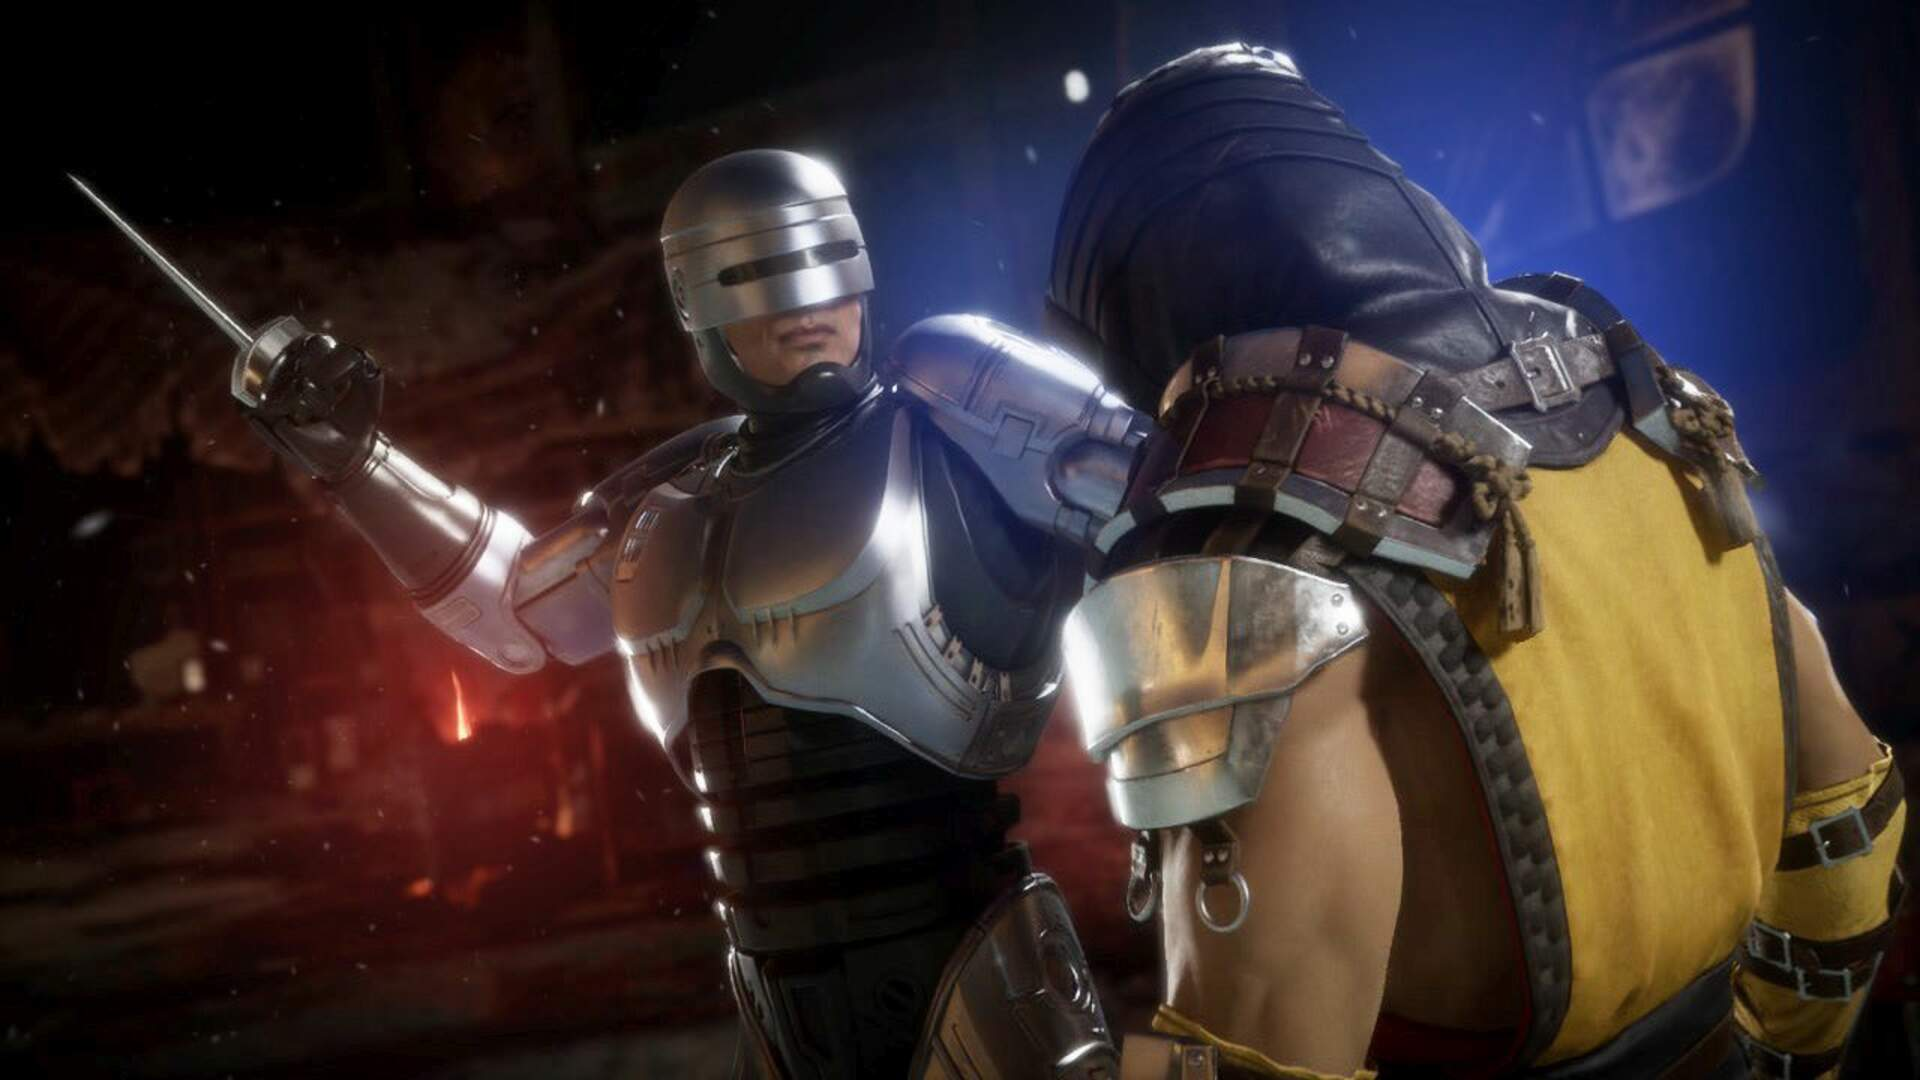 Mortal Kombat 11 Aftermath Continues The Story And Adds Robocop